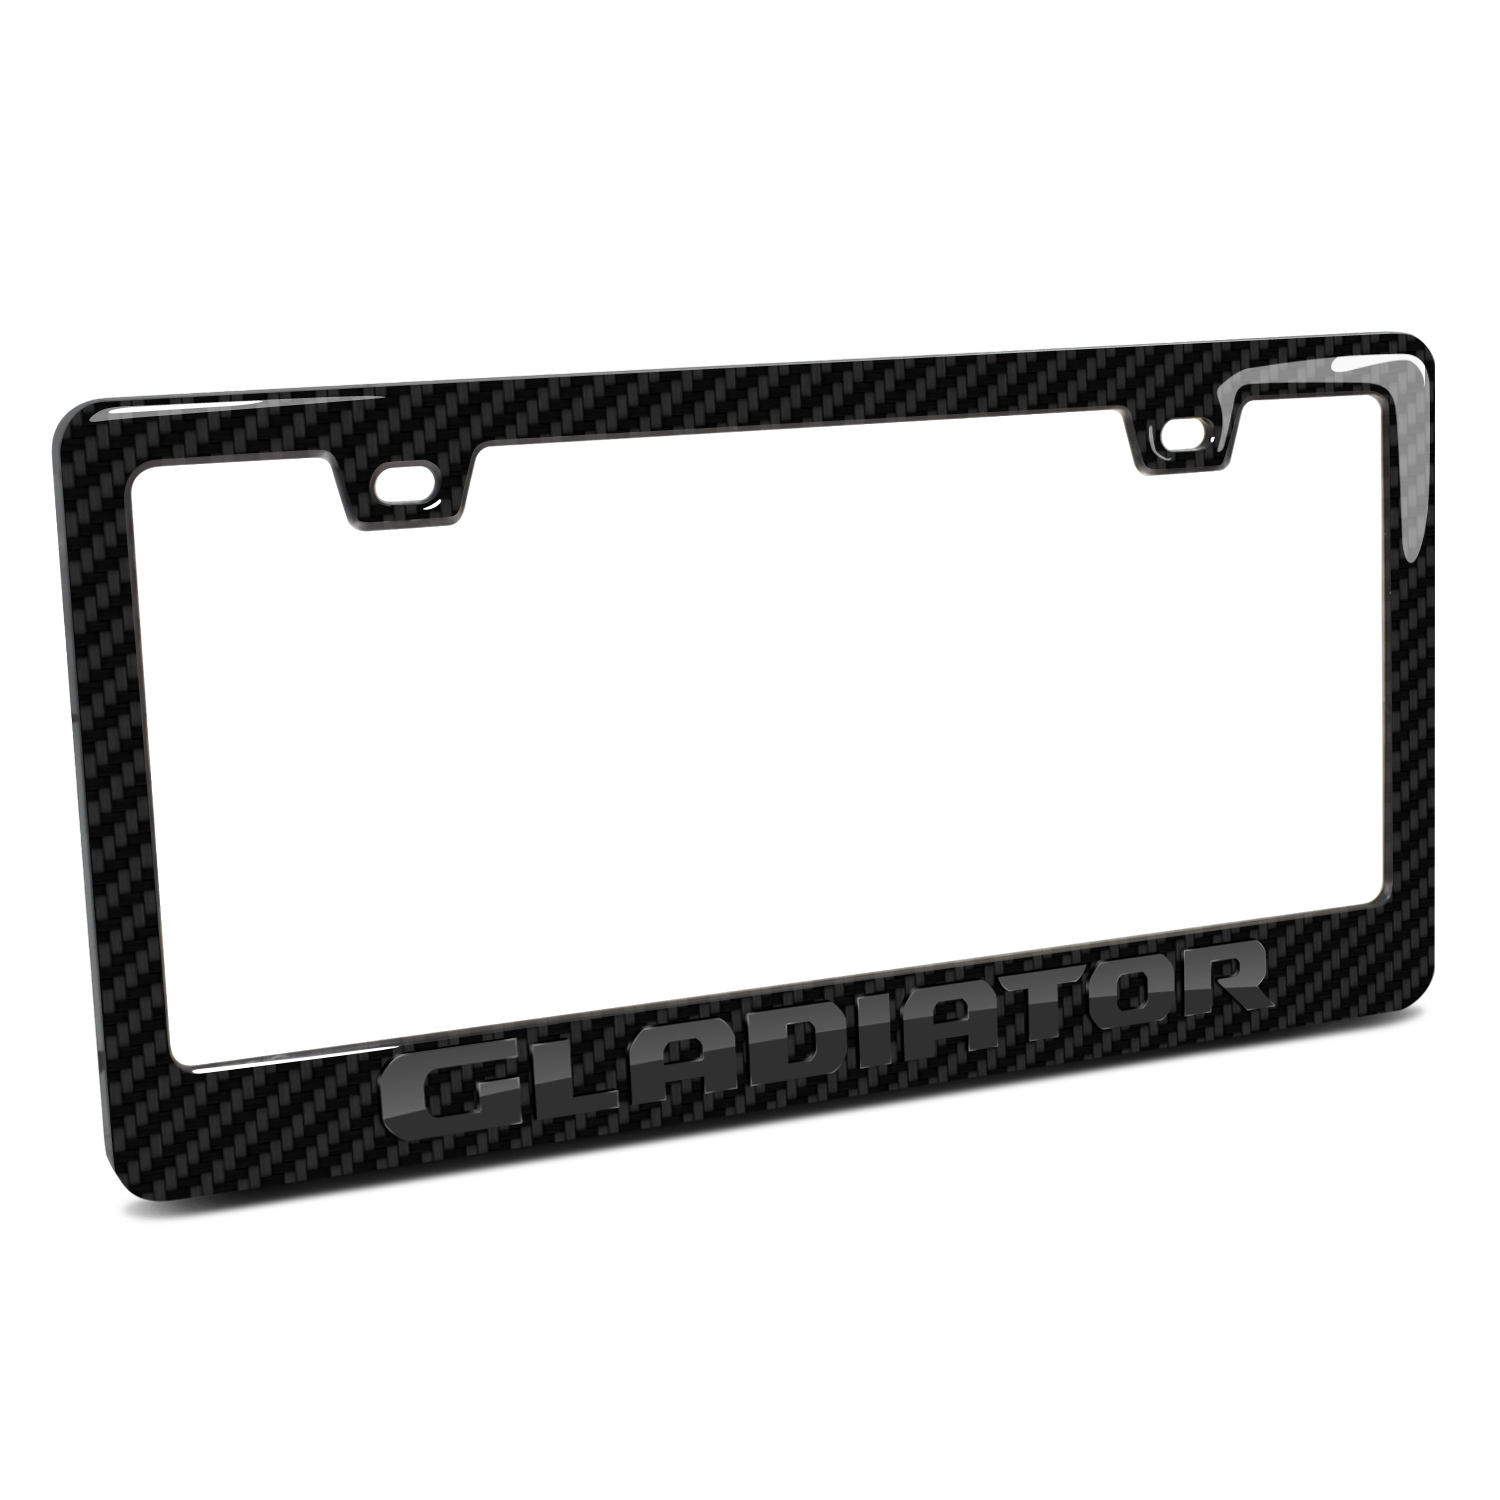 Jeep Gladiator in 3D Black on Black Real 3K Carbon Fiber Finish ABS Plastic License Plate Frame